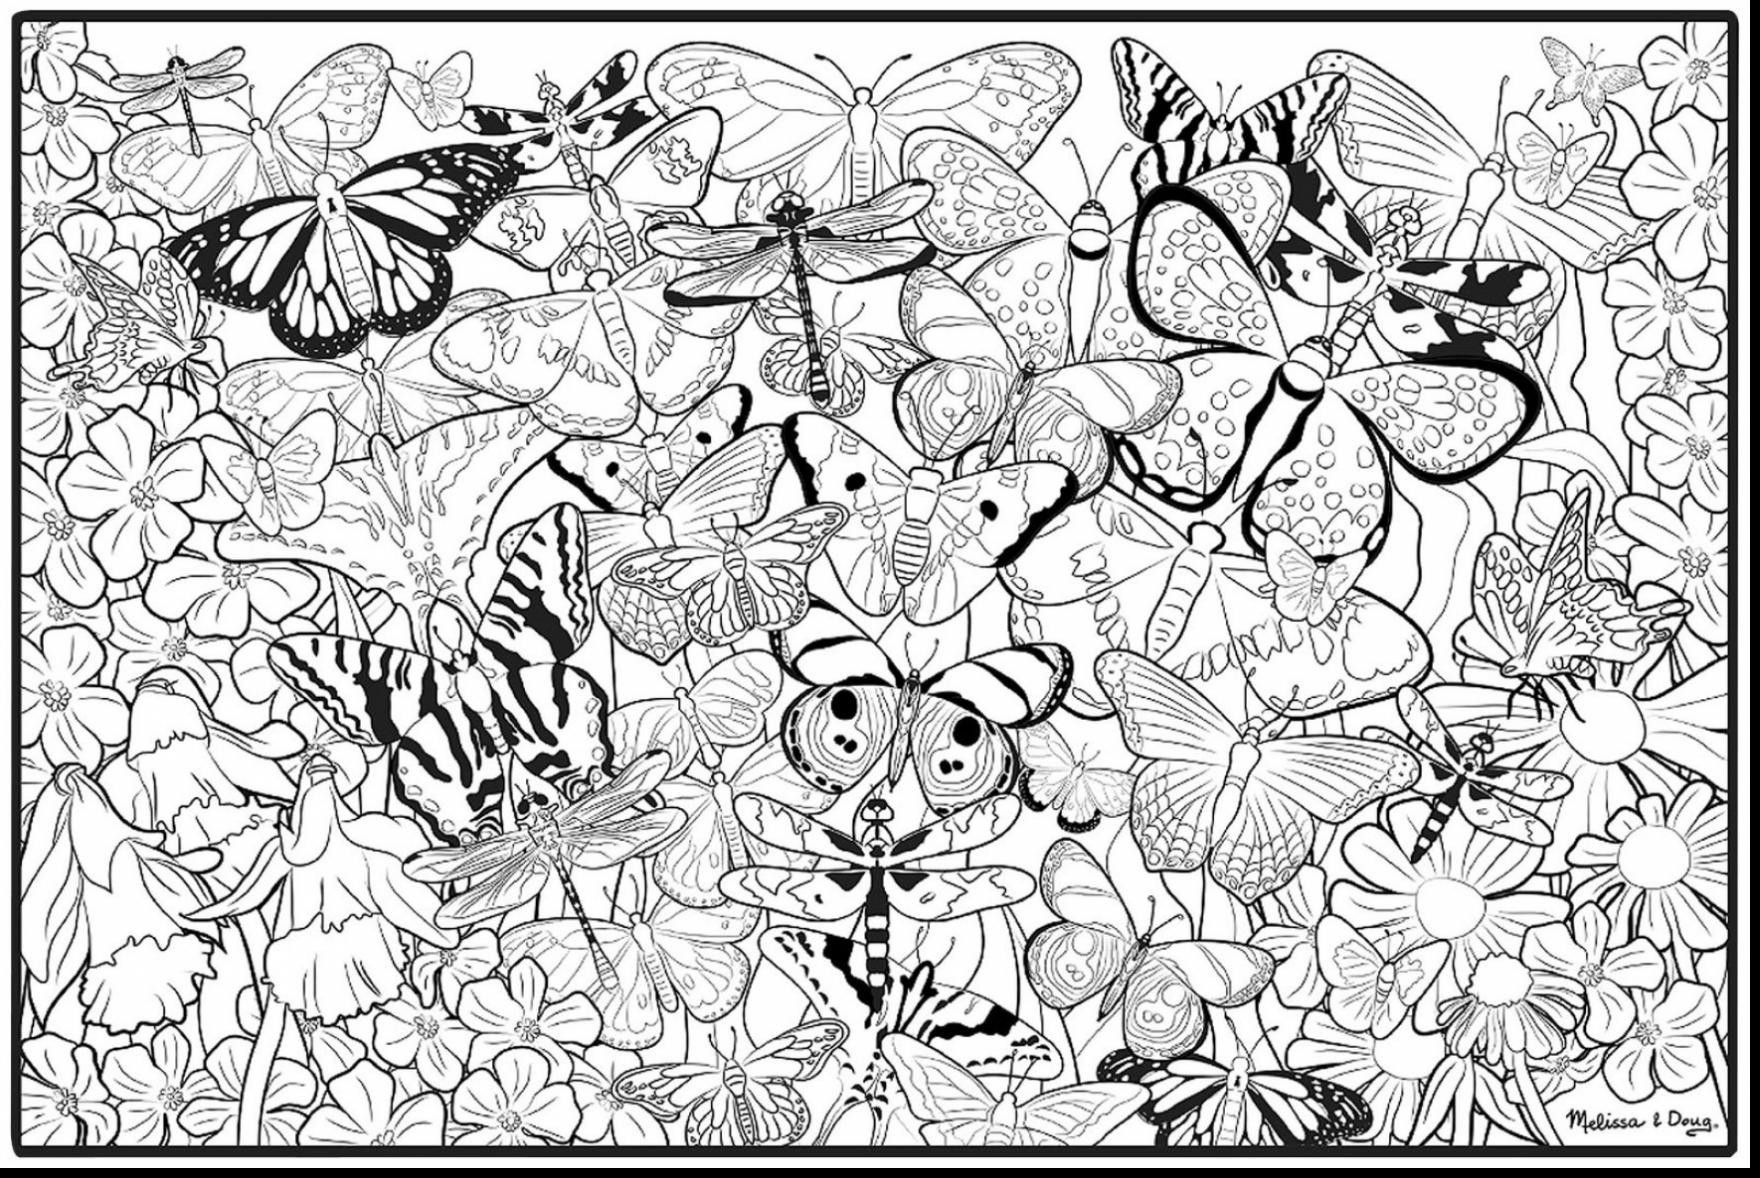 image relating to Printable Adult Coloring Pages Abstract identify Summary Grownup Coloring Wallpapers - Best Cost-free Summary Grownup